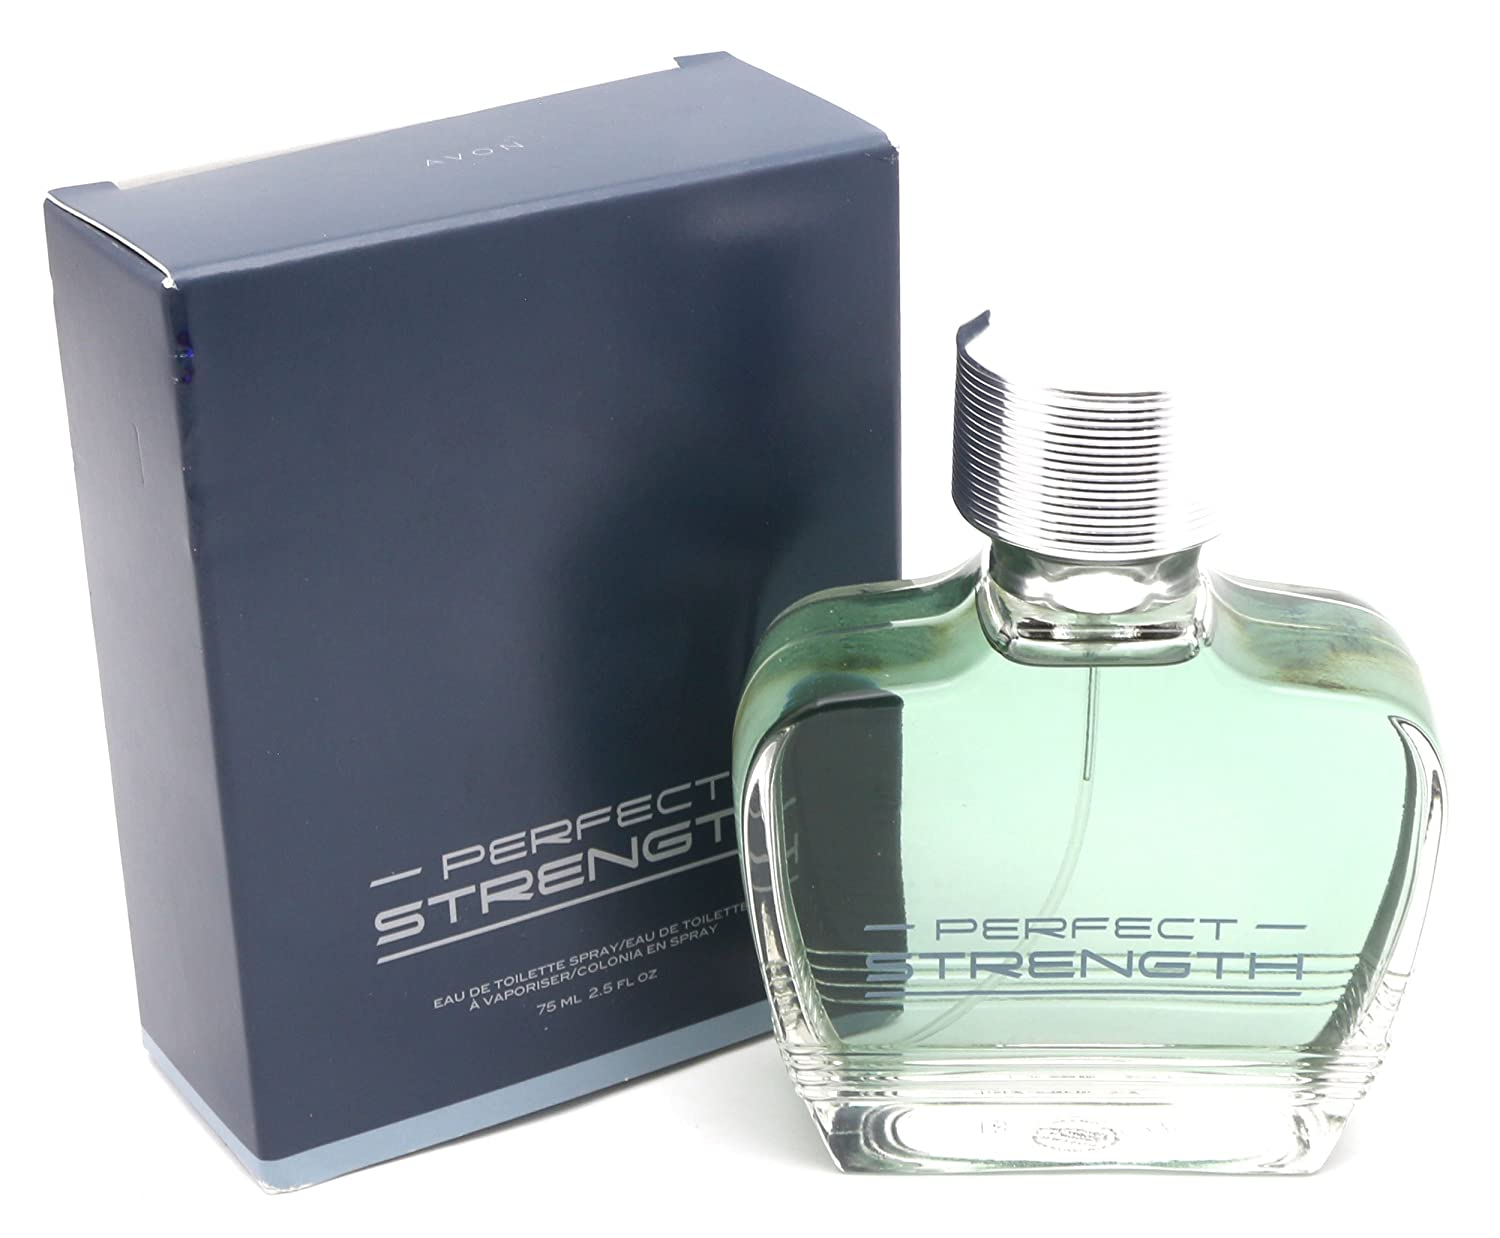 Amazon.com : Avon *PERFECT STRENGTH* For Men Eau De Toilette Spray 2.5 oz / 75 ml : Beauty